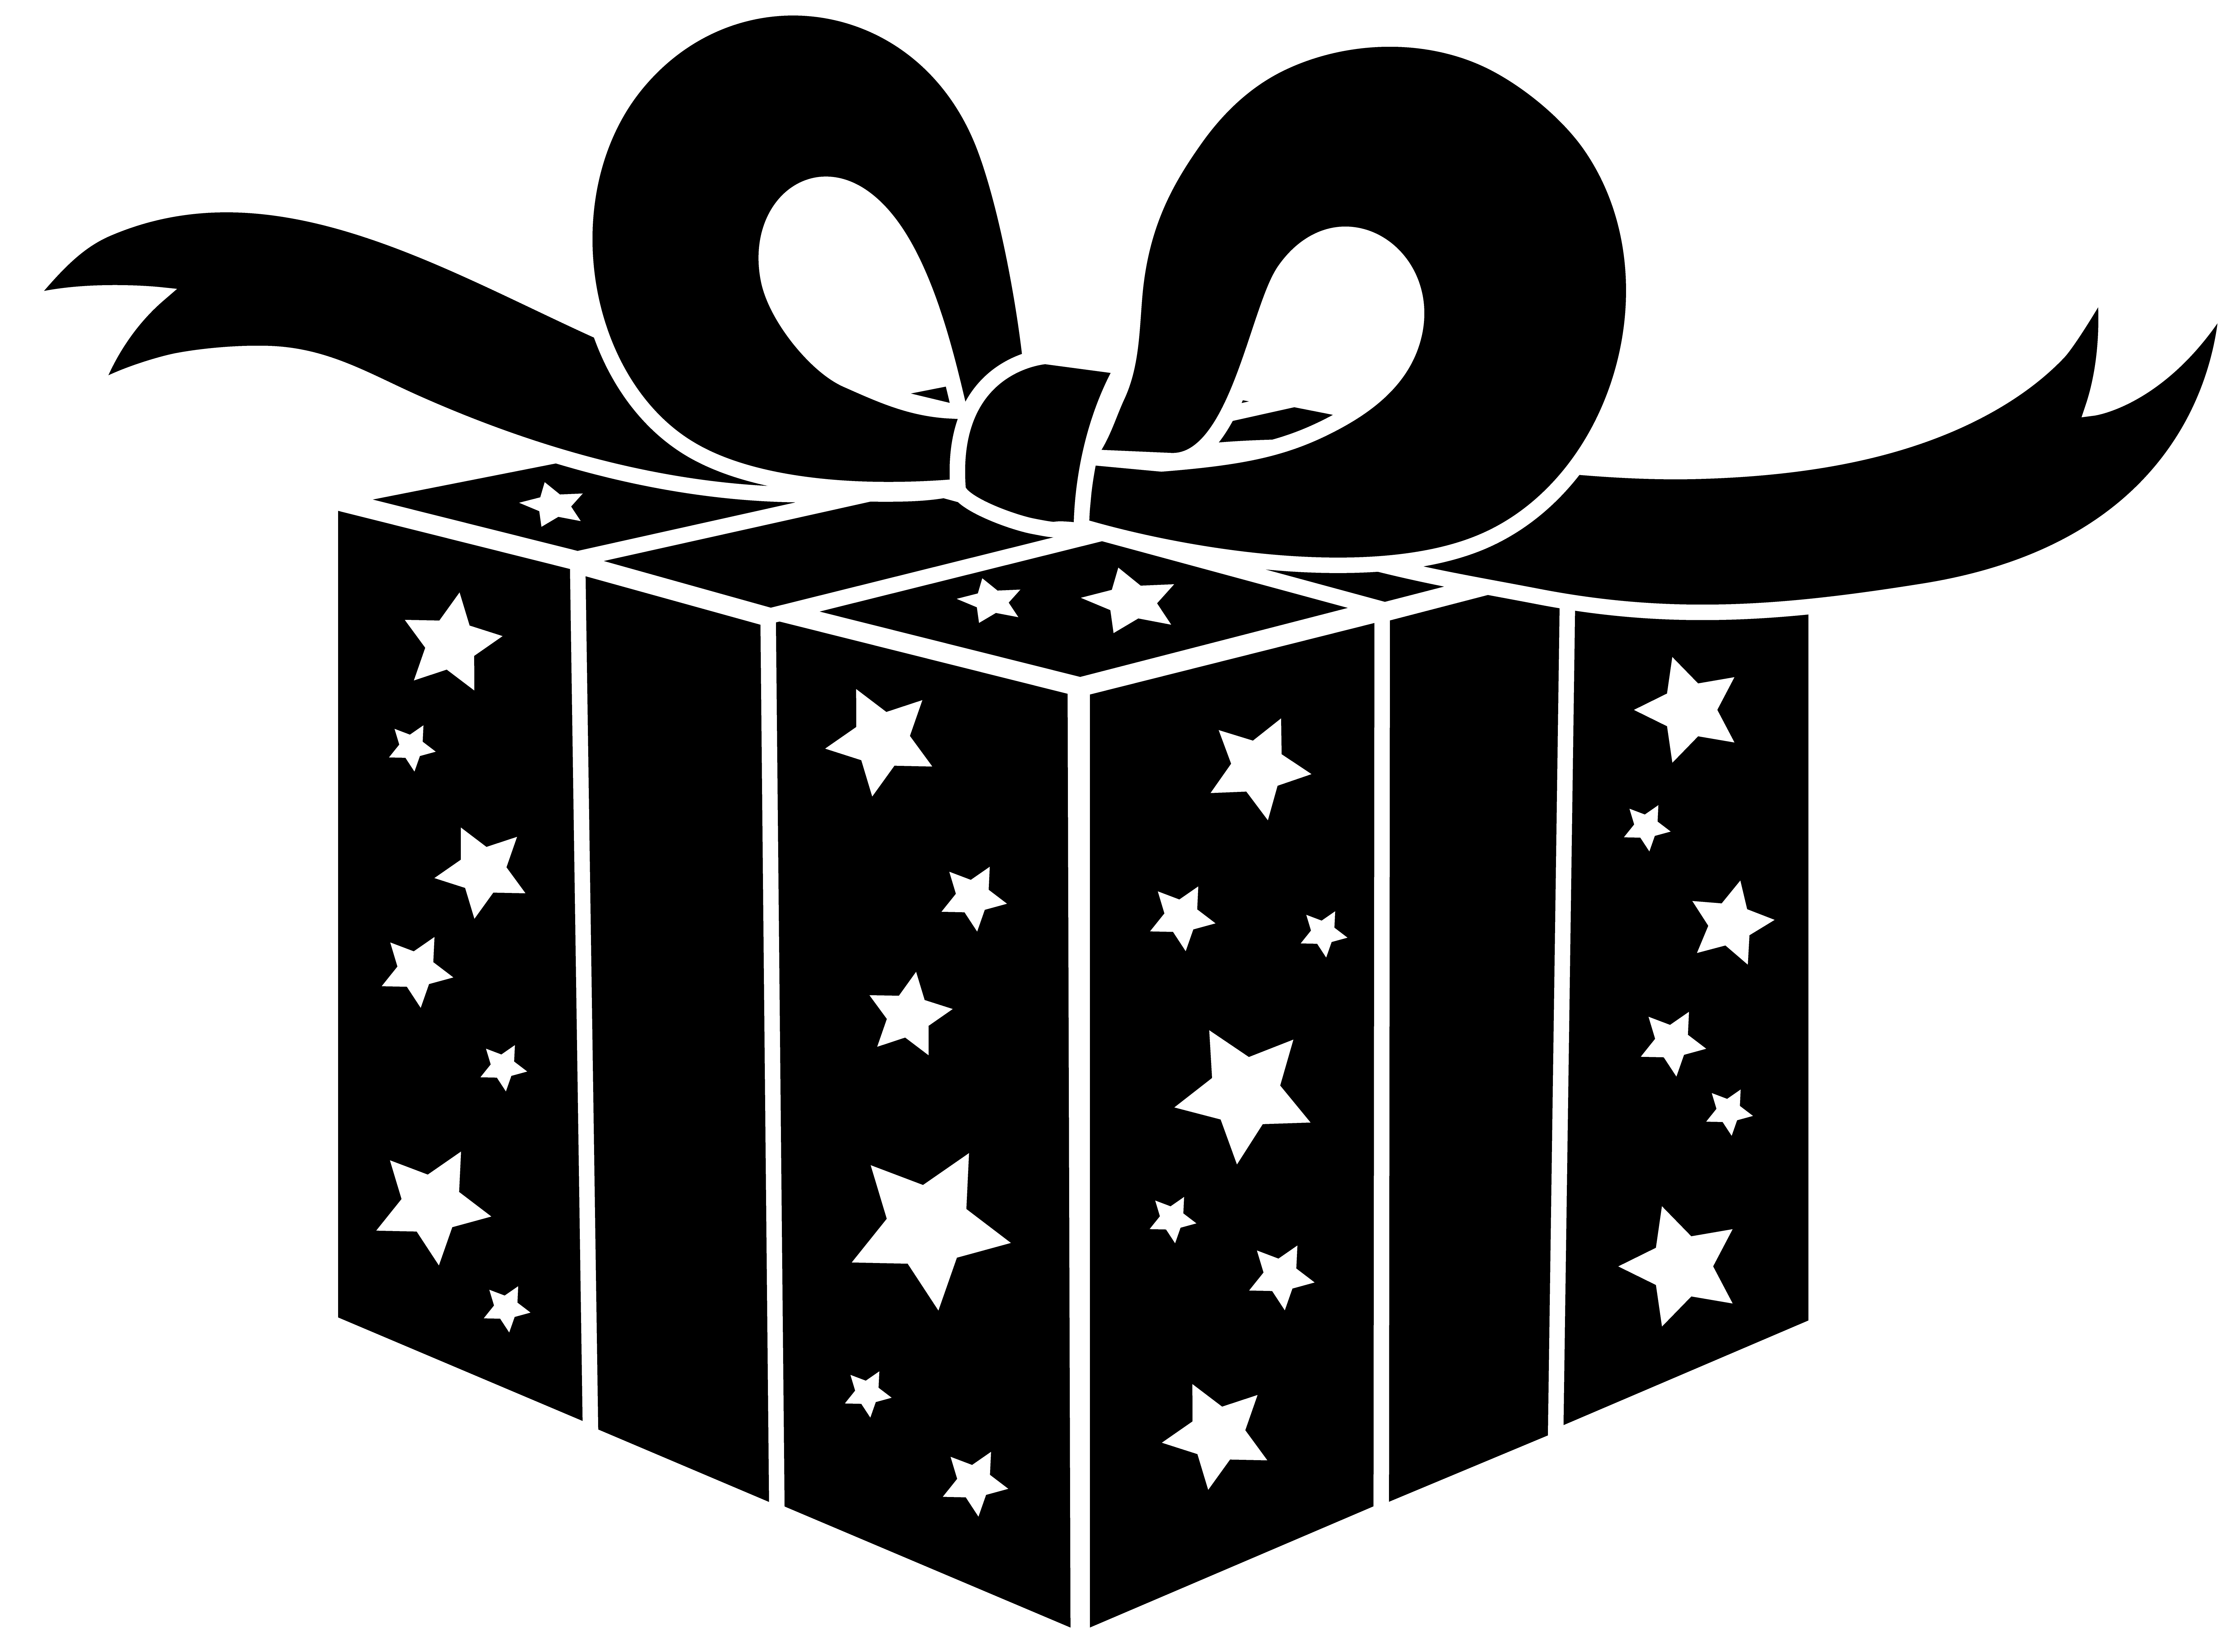 Gift clipart party gift, Gift party gift Transparent FREE.